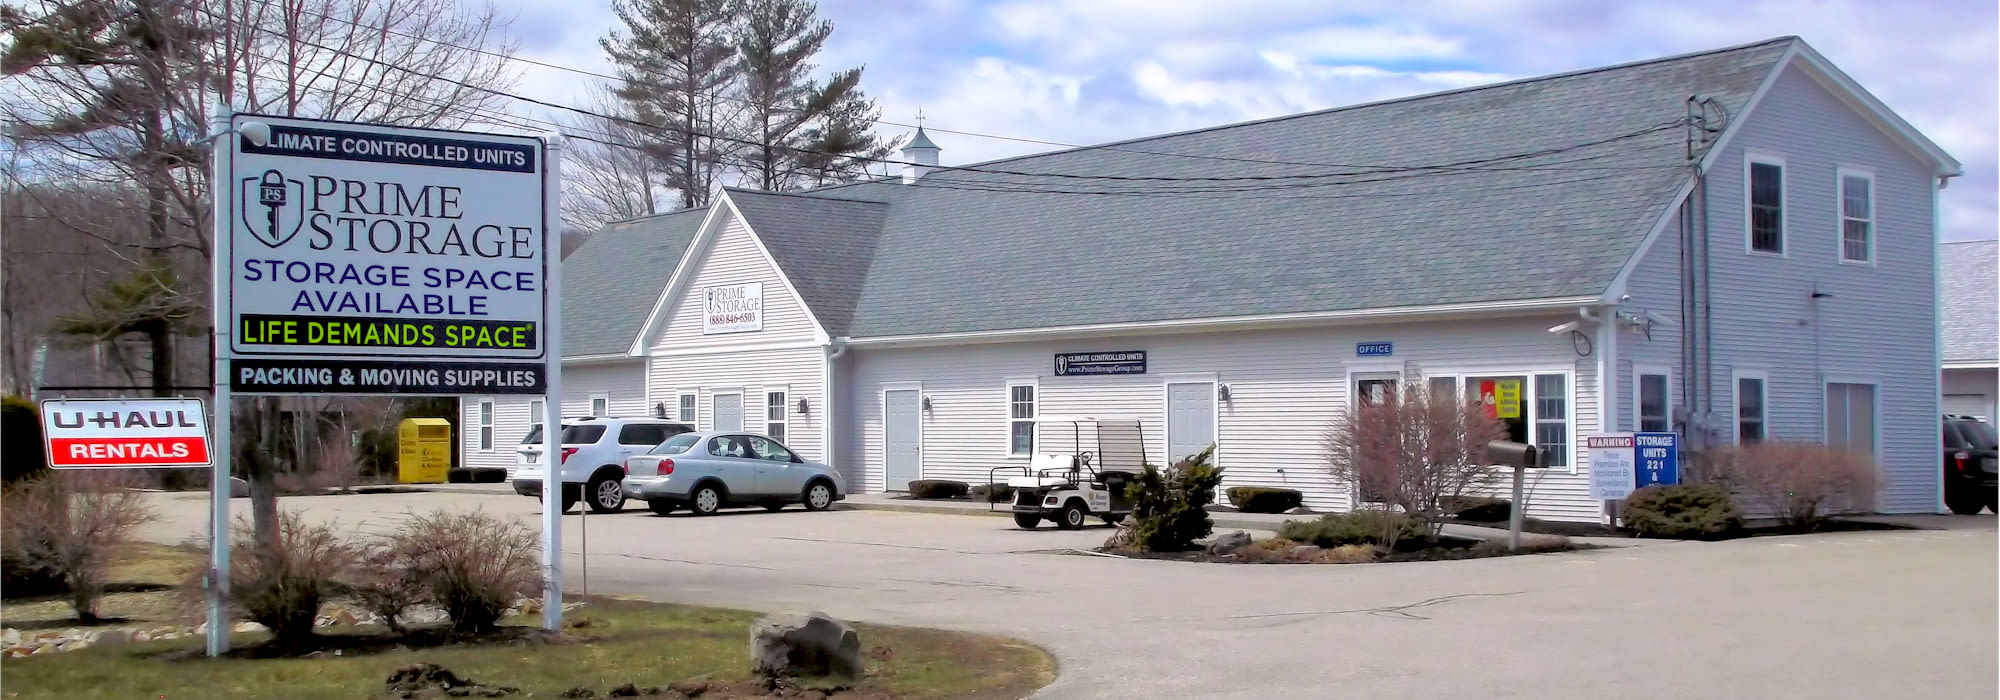 Prime Storage in York, ME